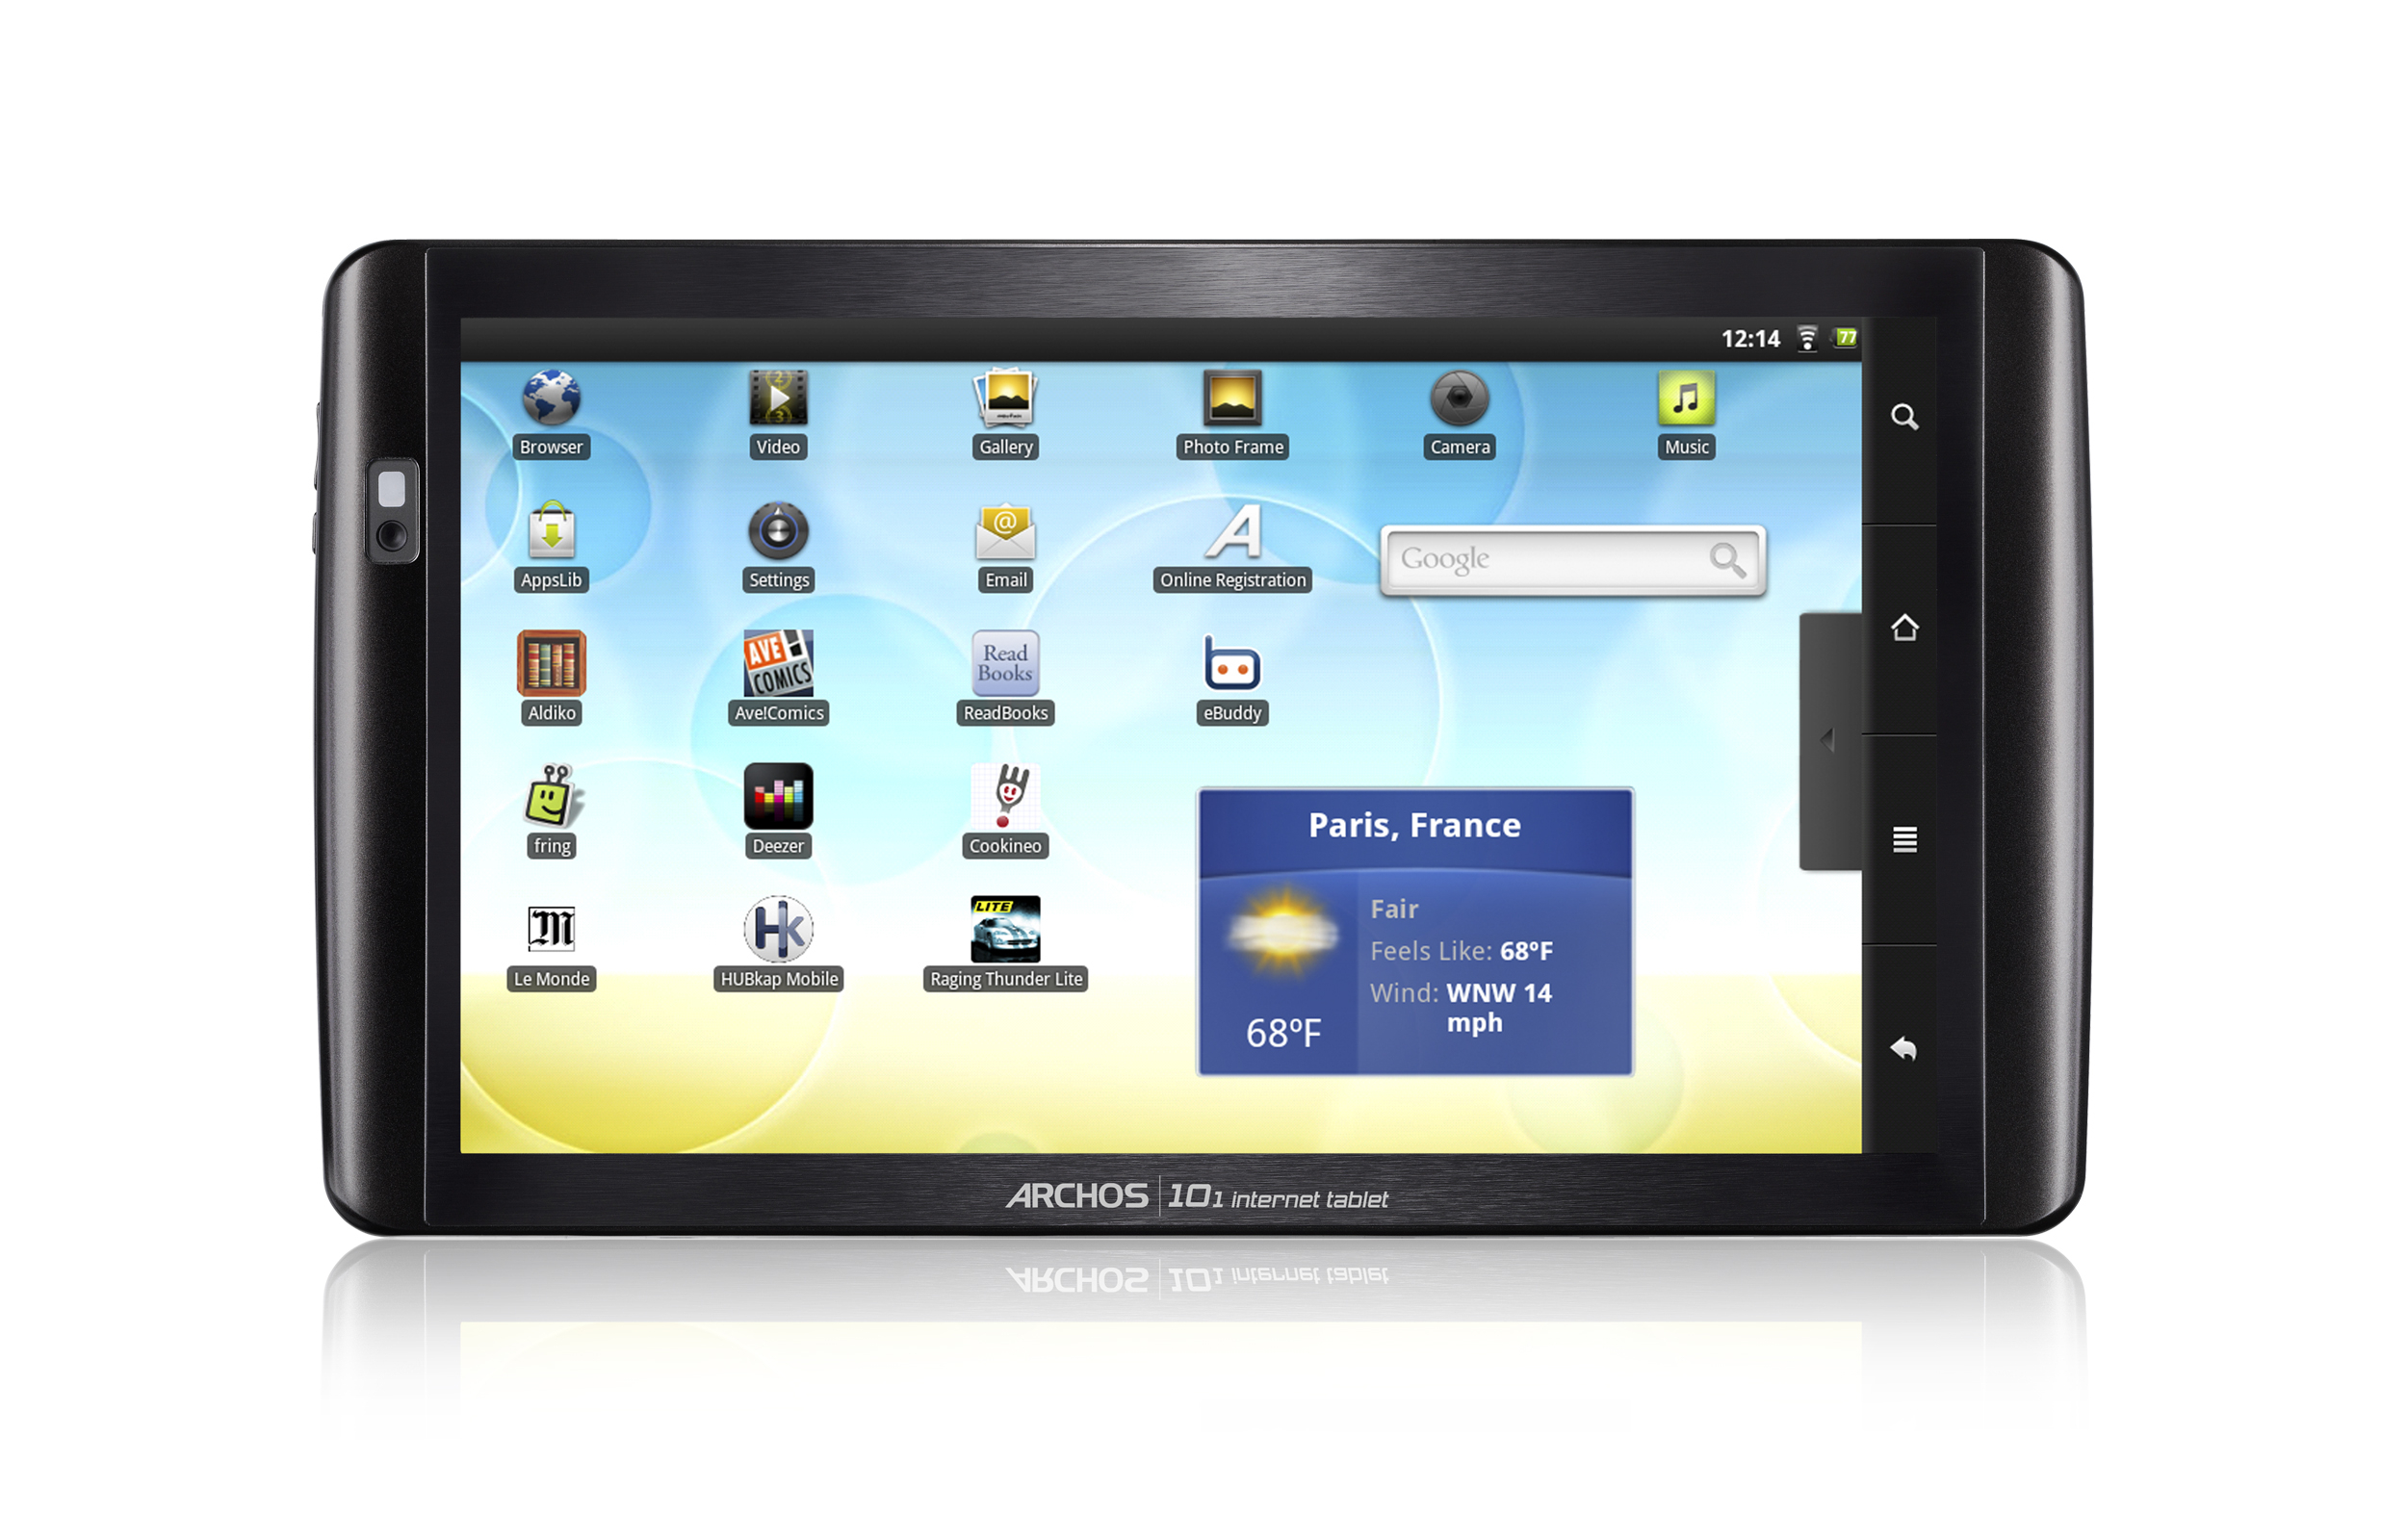 Archos 101 internet tablet for Jardin tablet uses